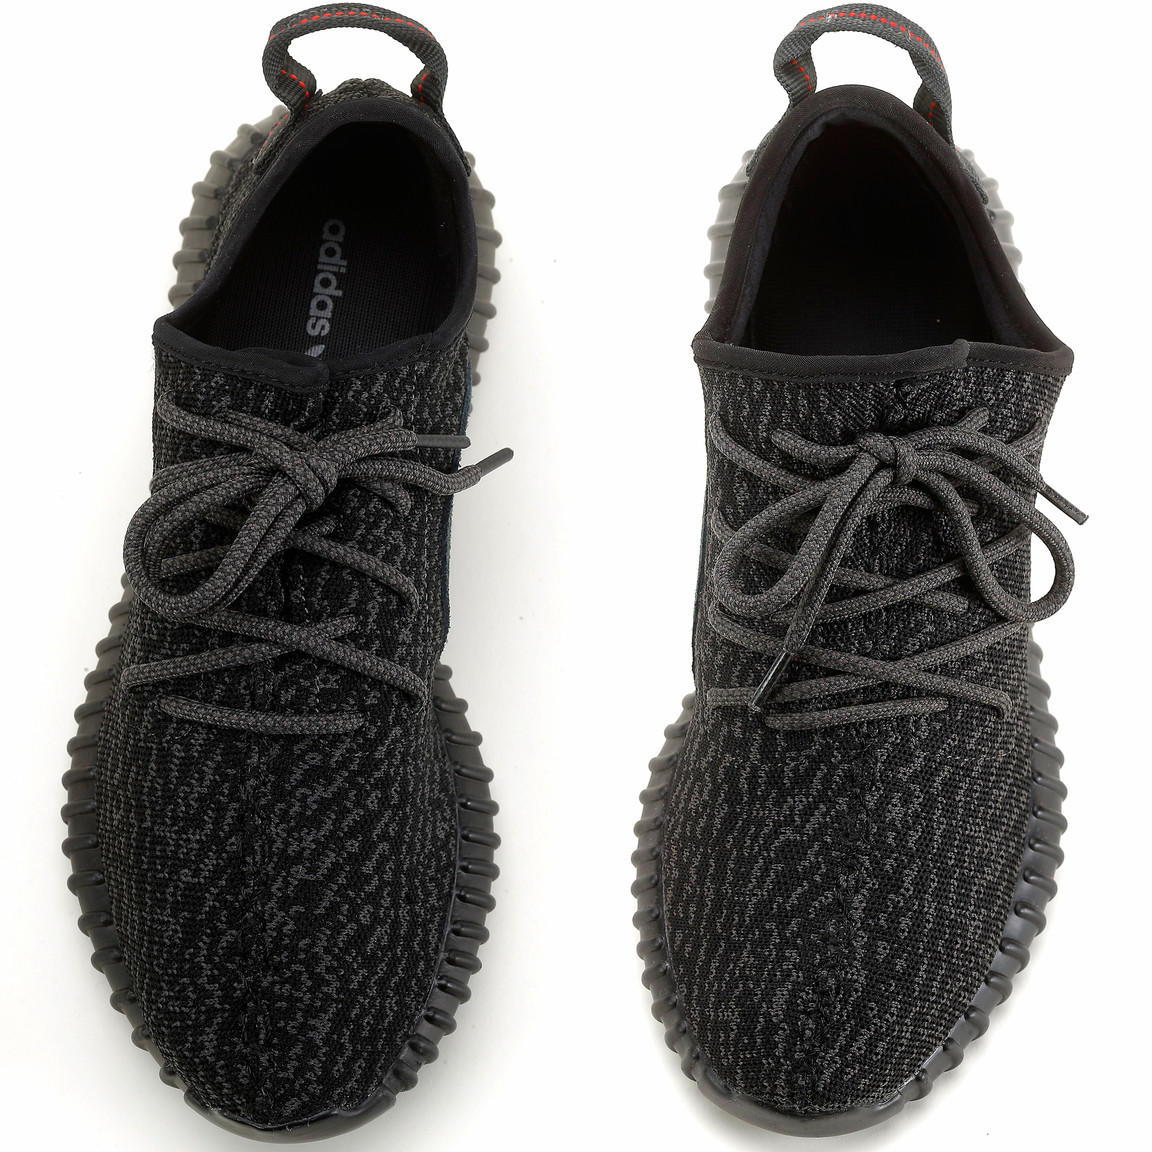 e5e58d117b23c Counterfeit Yeezys and the booming sneaker black market - Los ...